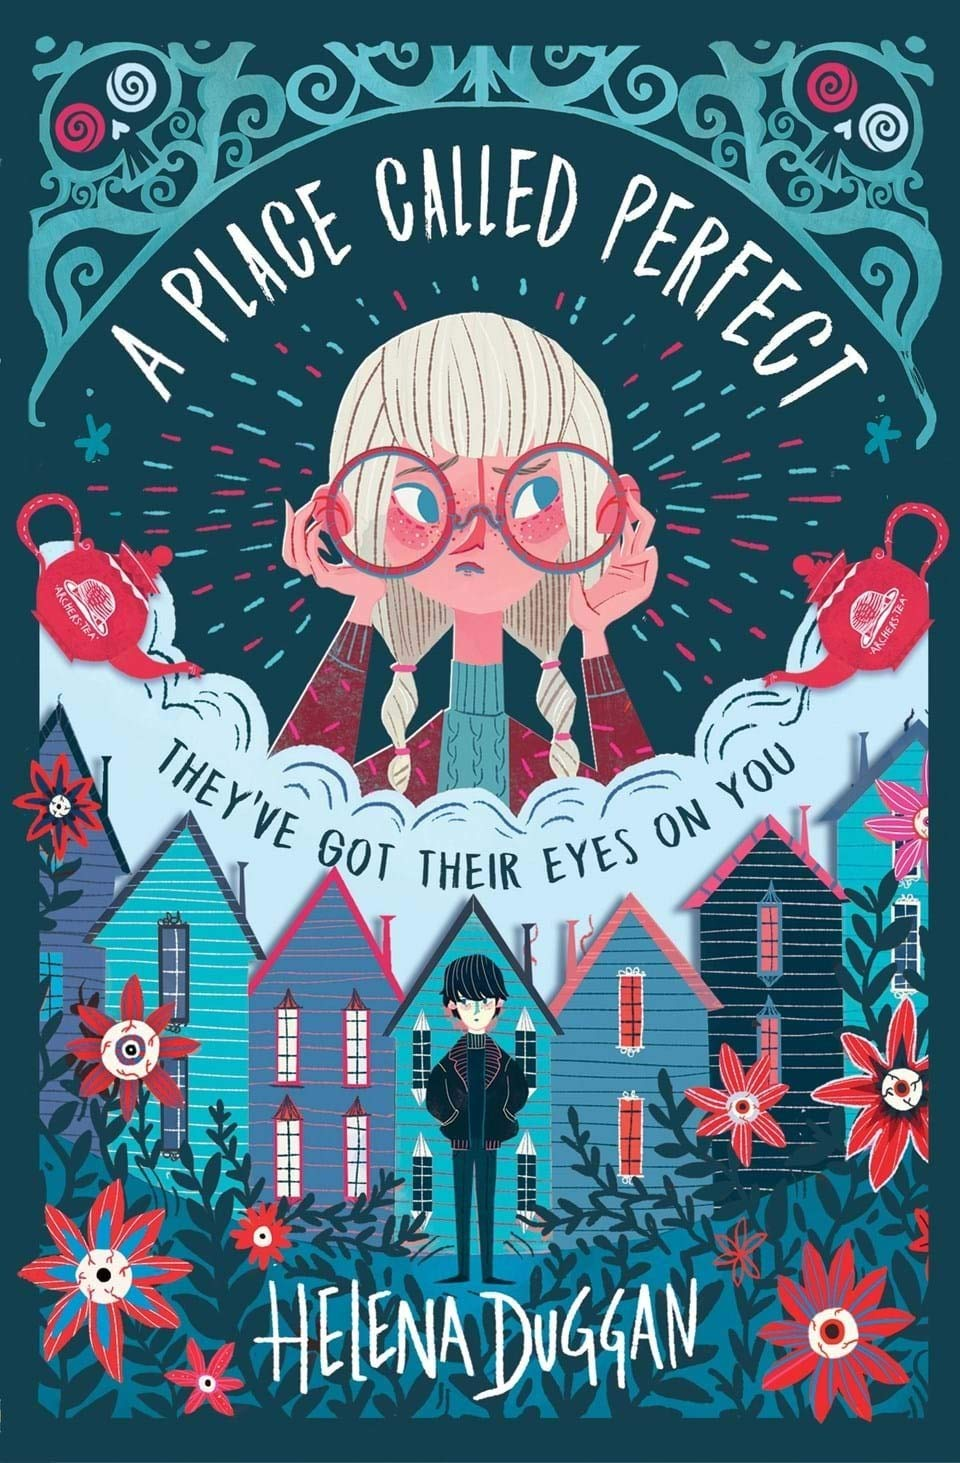 A Place Called Perfect by Helena Duggan